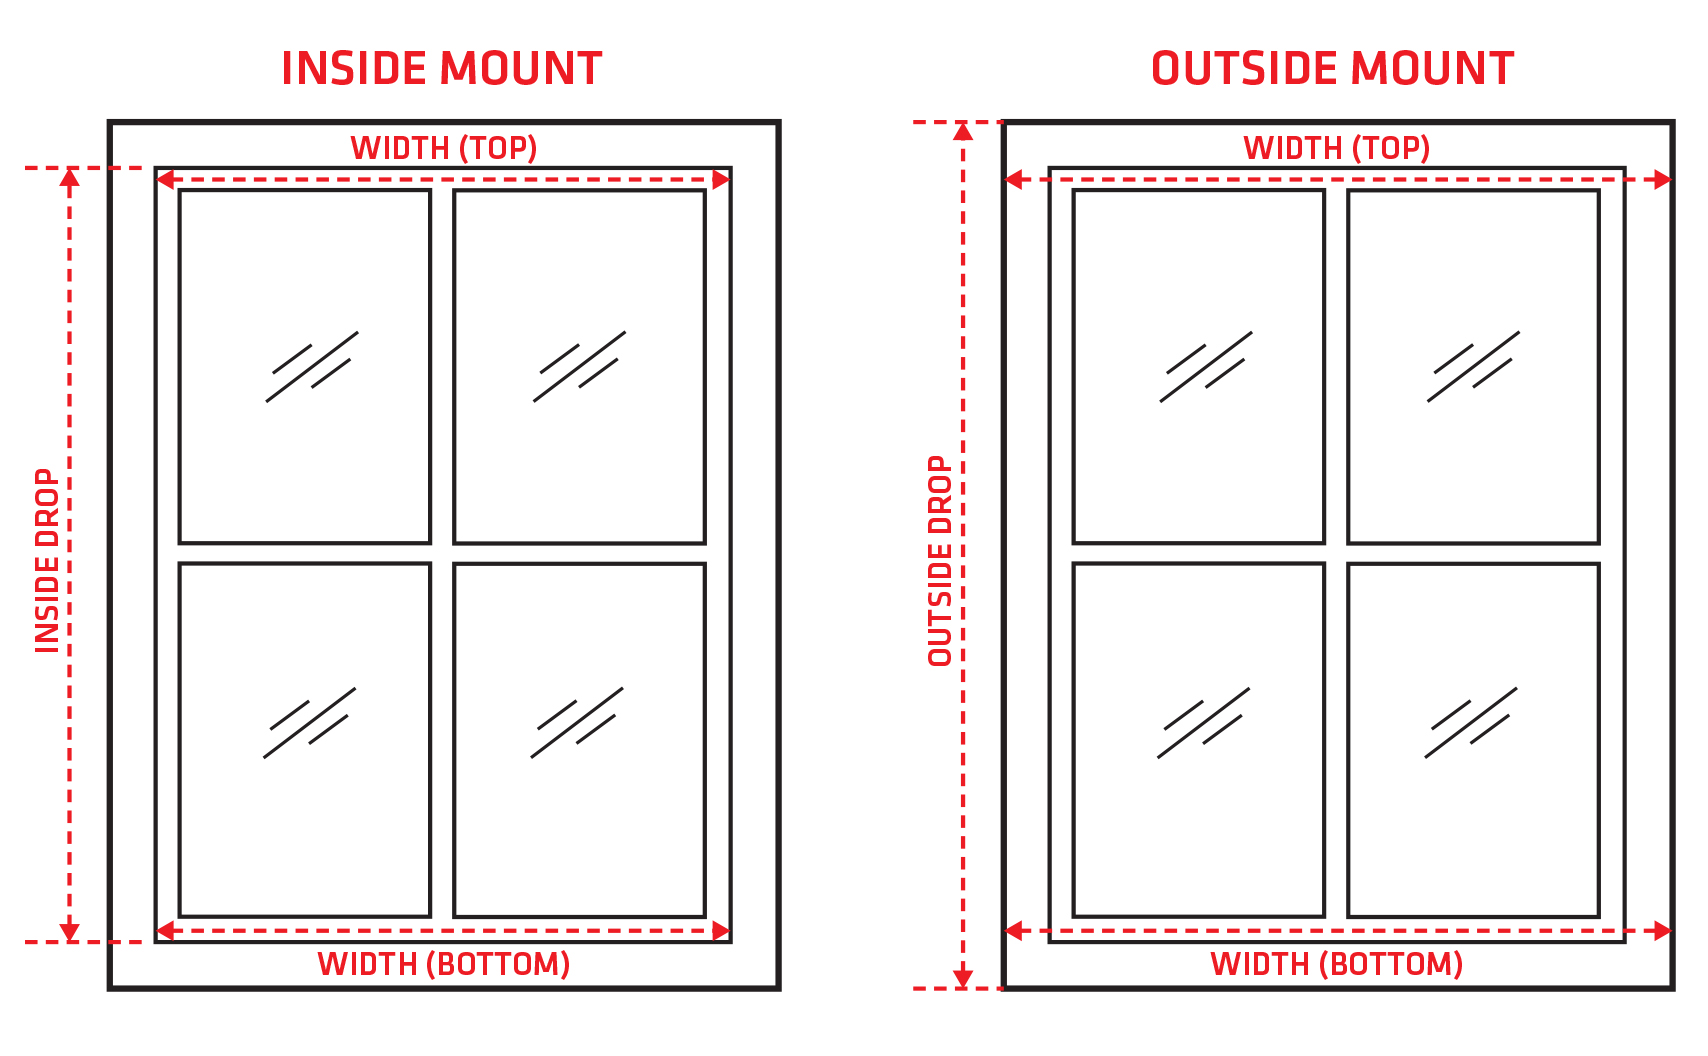 best andersen windows bedroom sizes molding size ideas french minimum improvement window dimensions chart rail inside home on sill to blind chair types advice mount picture for blinds how double rails typical measure about mini house standard cat height hung